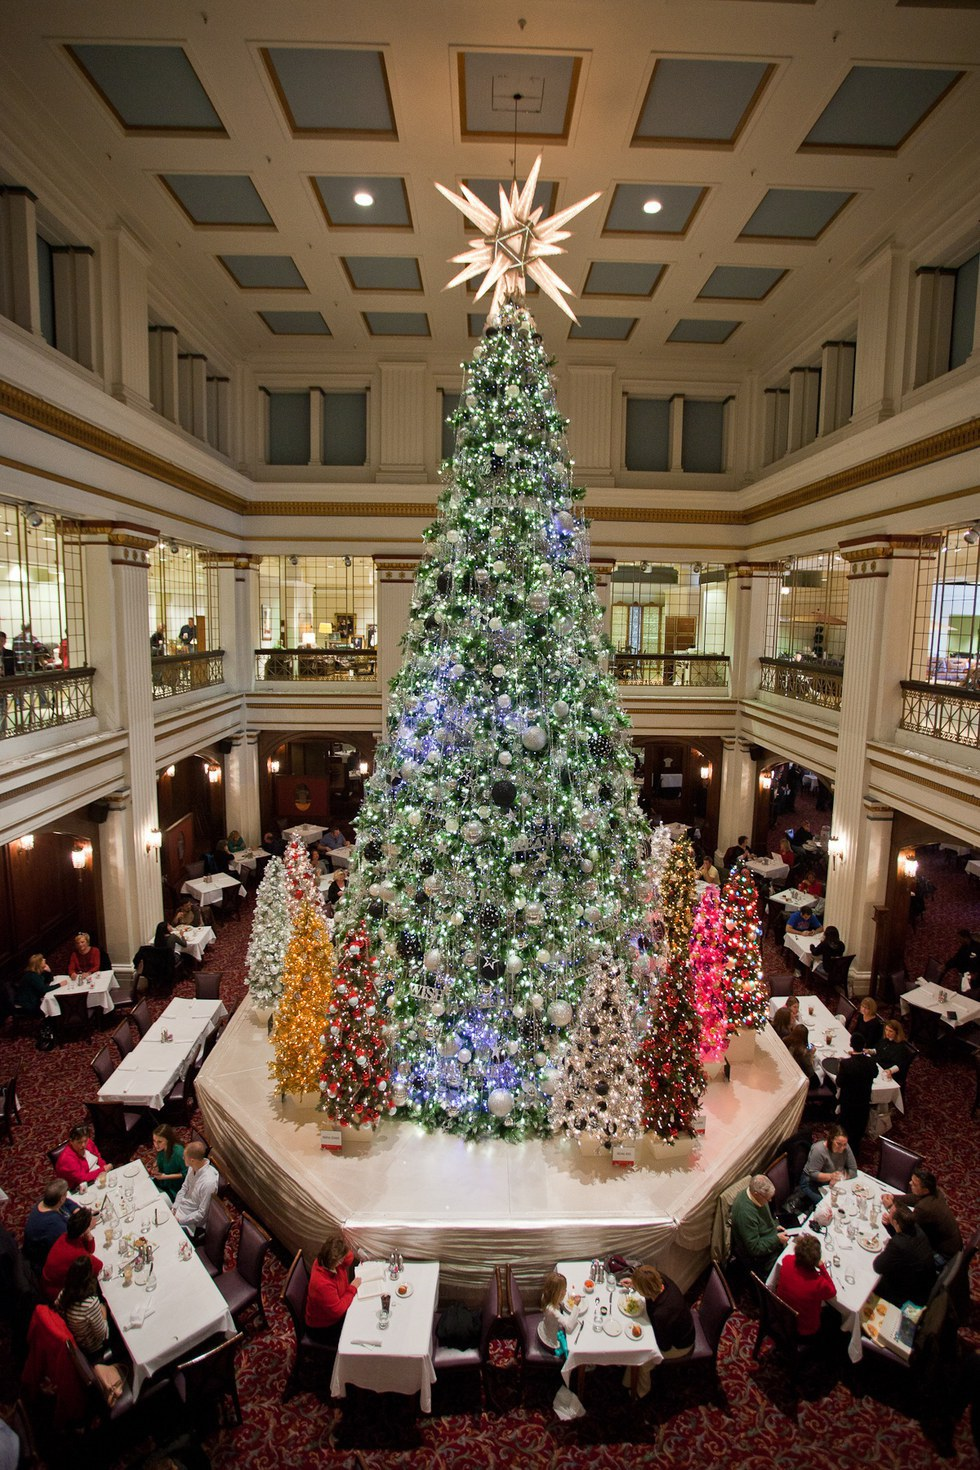 5 must do christmas activities in chicago - Where Does Christmas Come From